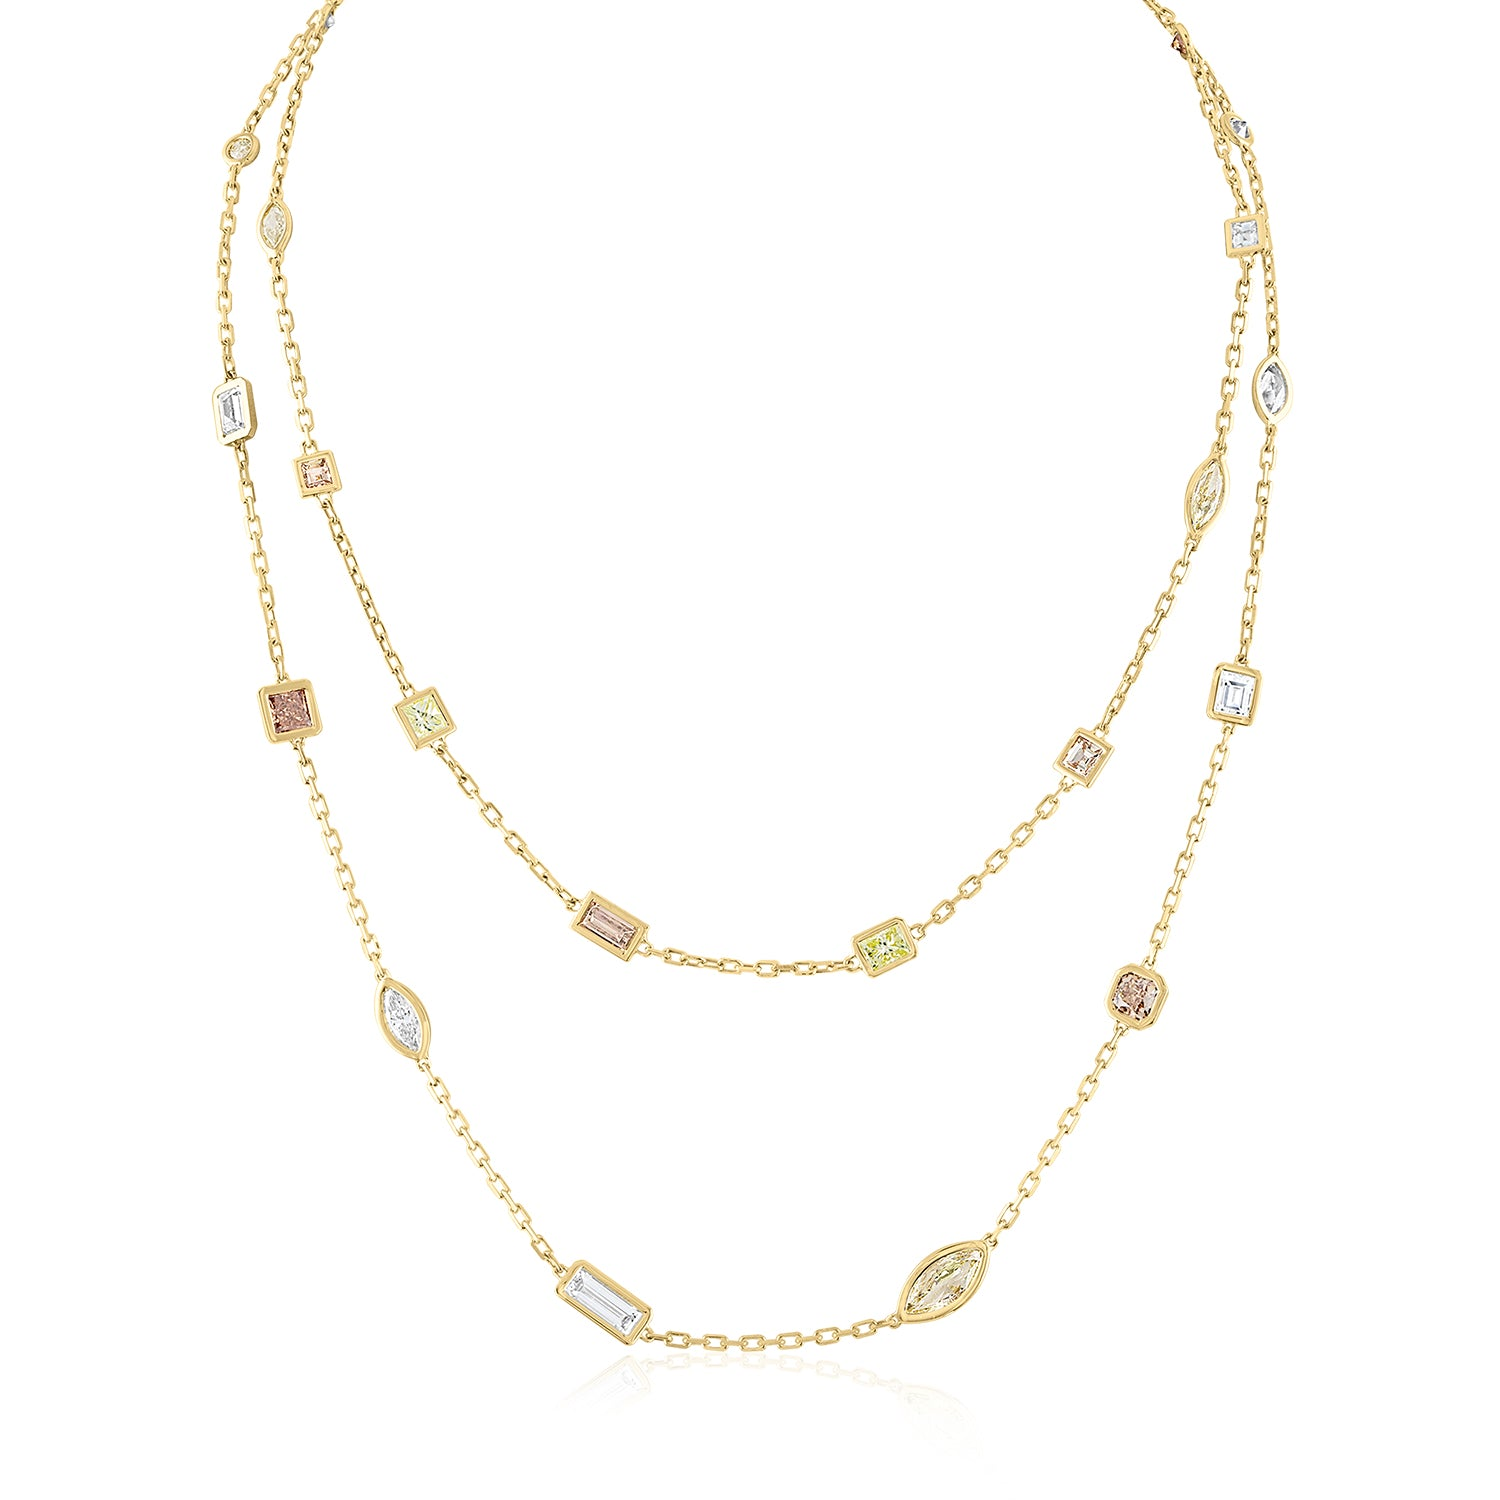 Mix of diamond shapes and colors 18K gold made to order necklace by Julie Lamb